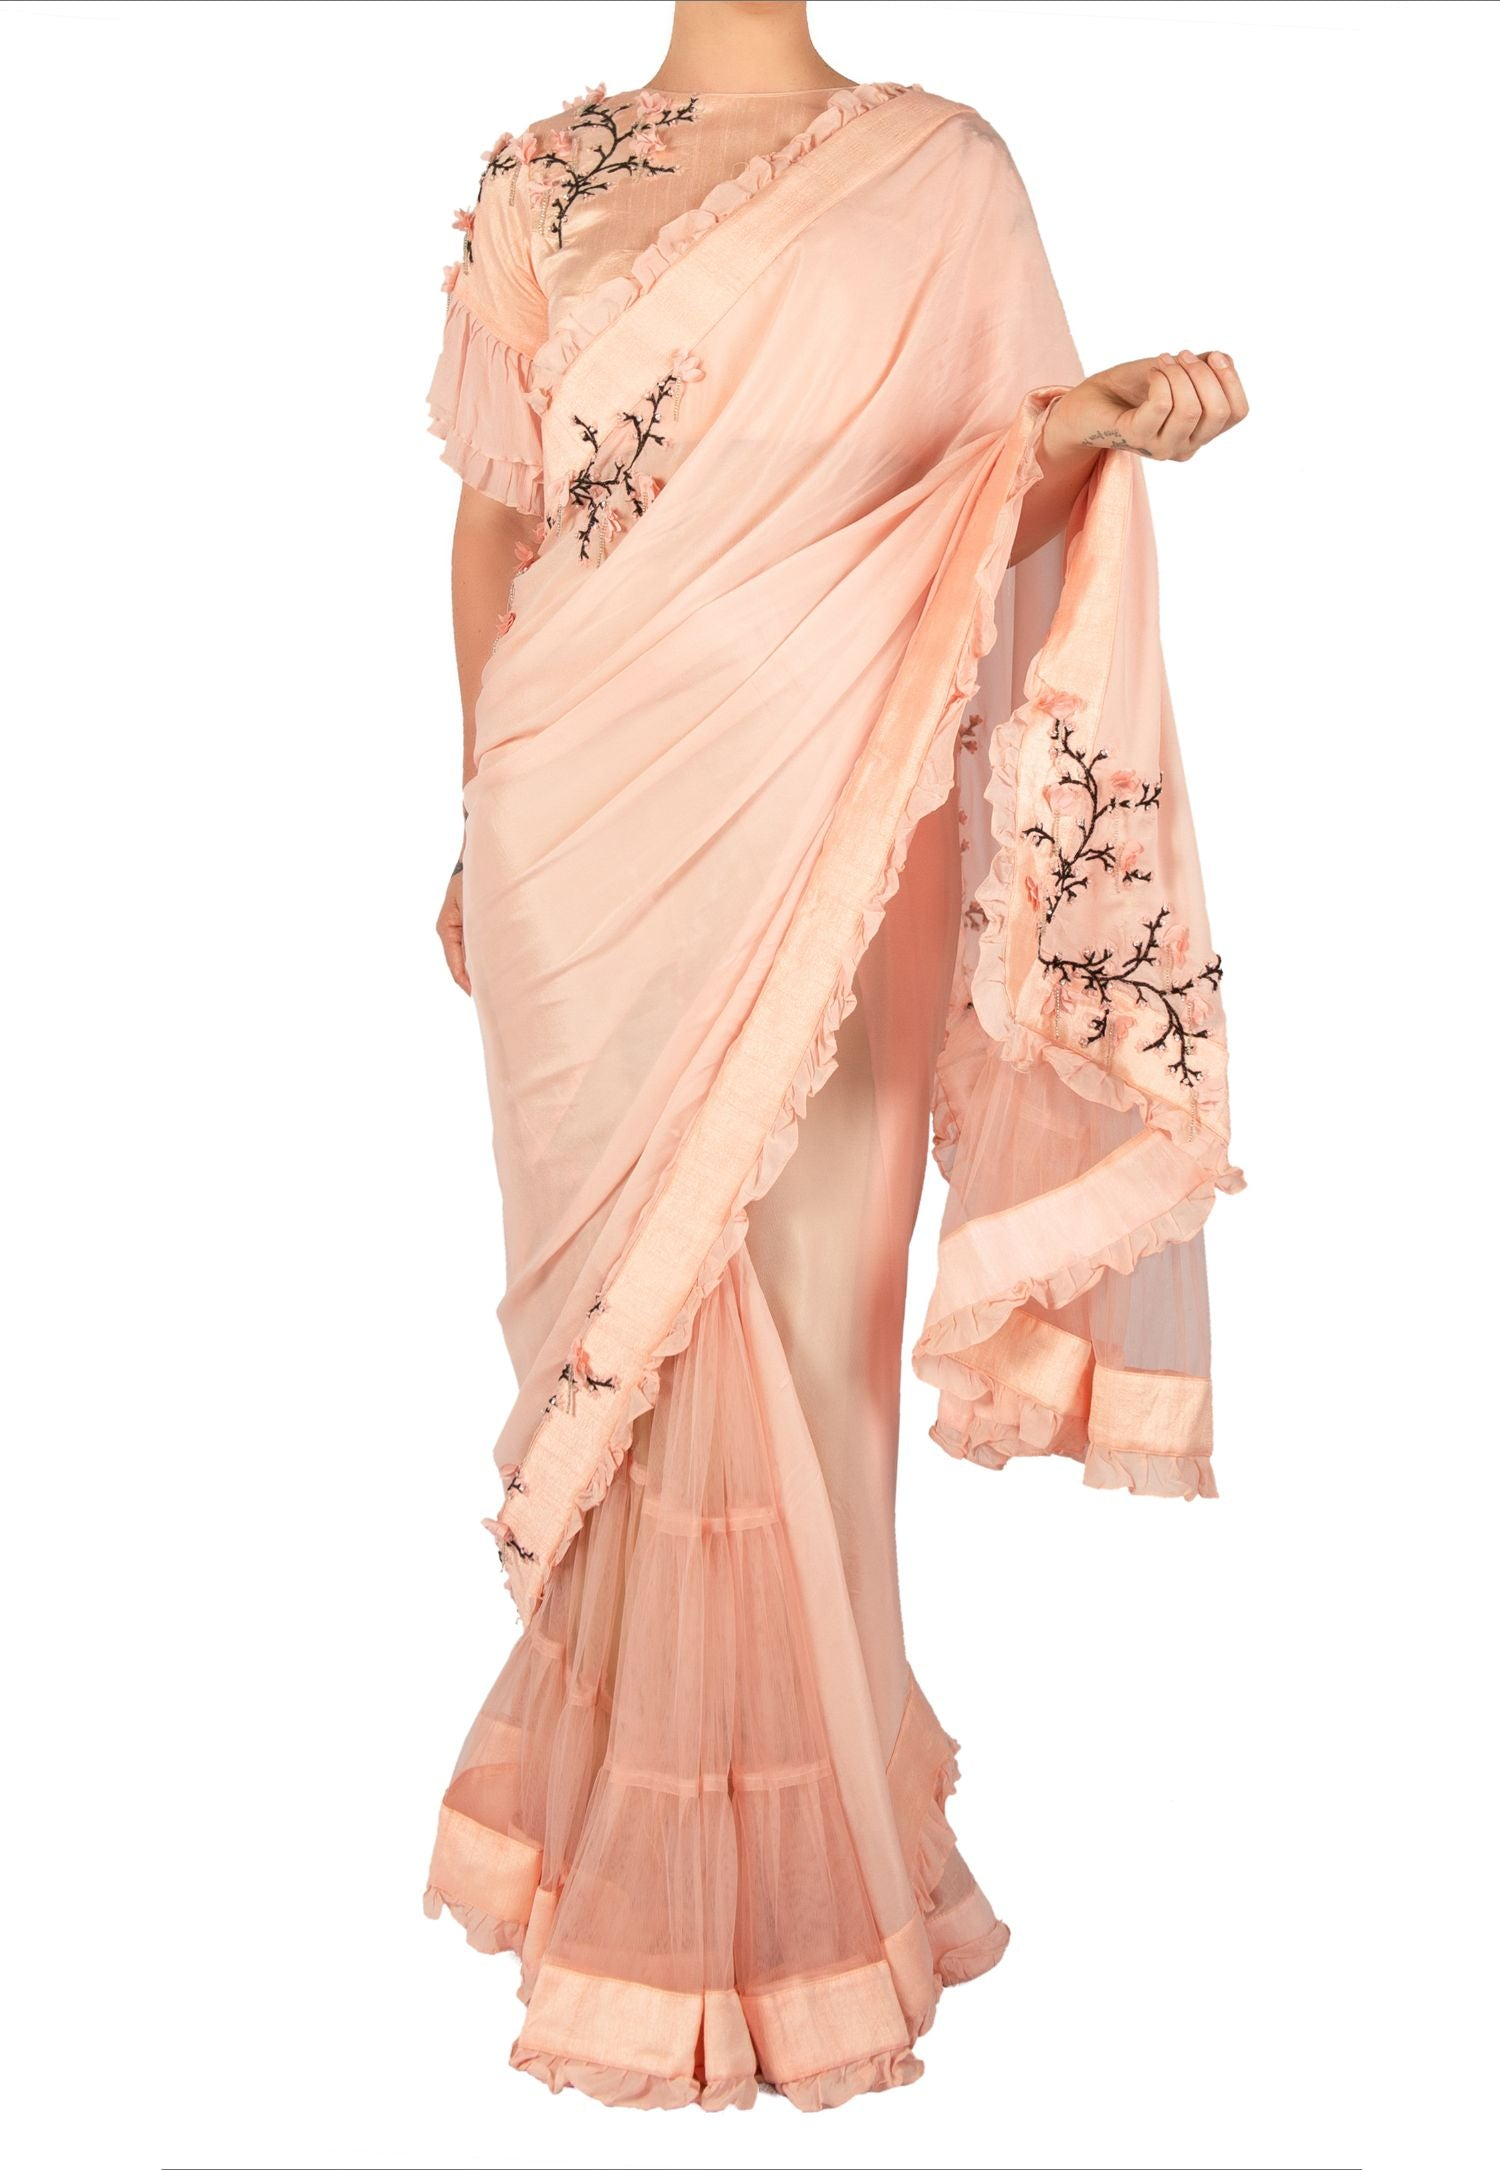 PEACH SAREE WITH NET PLEATS AND CHERRY BLOSSOM DETAIL